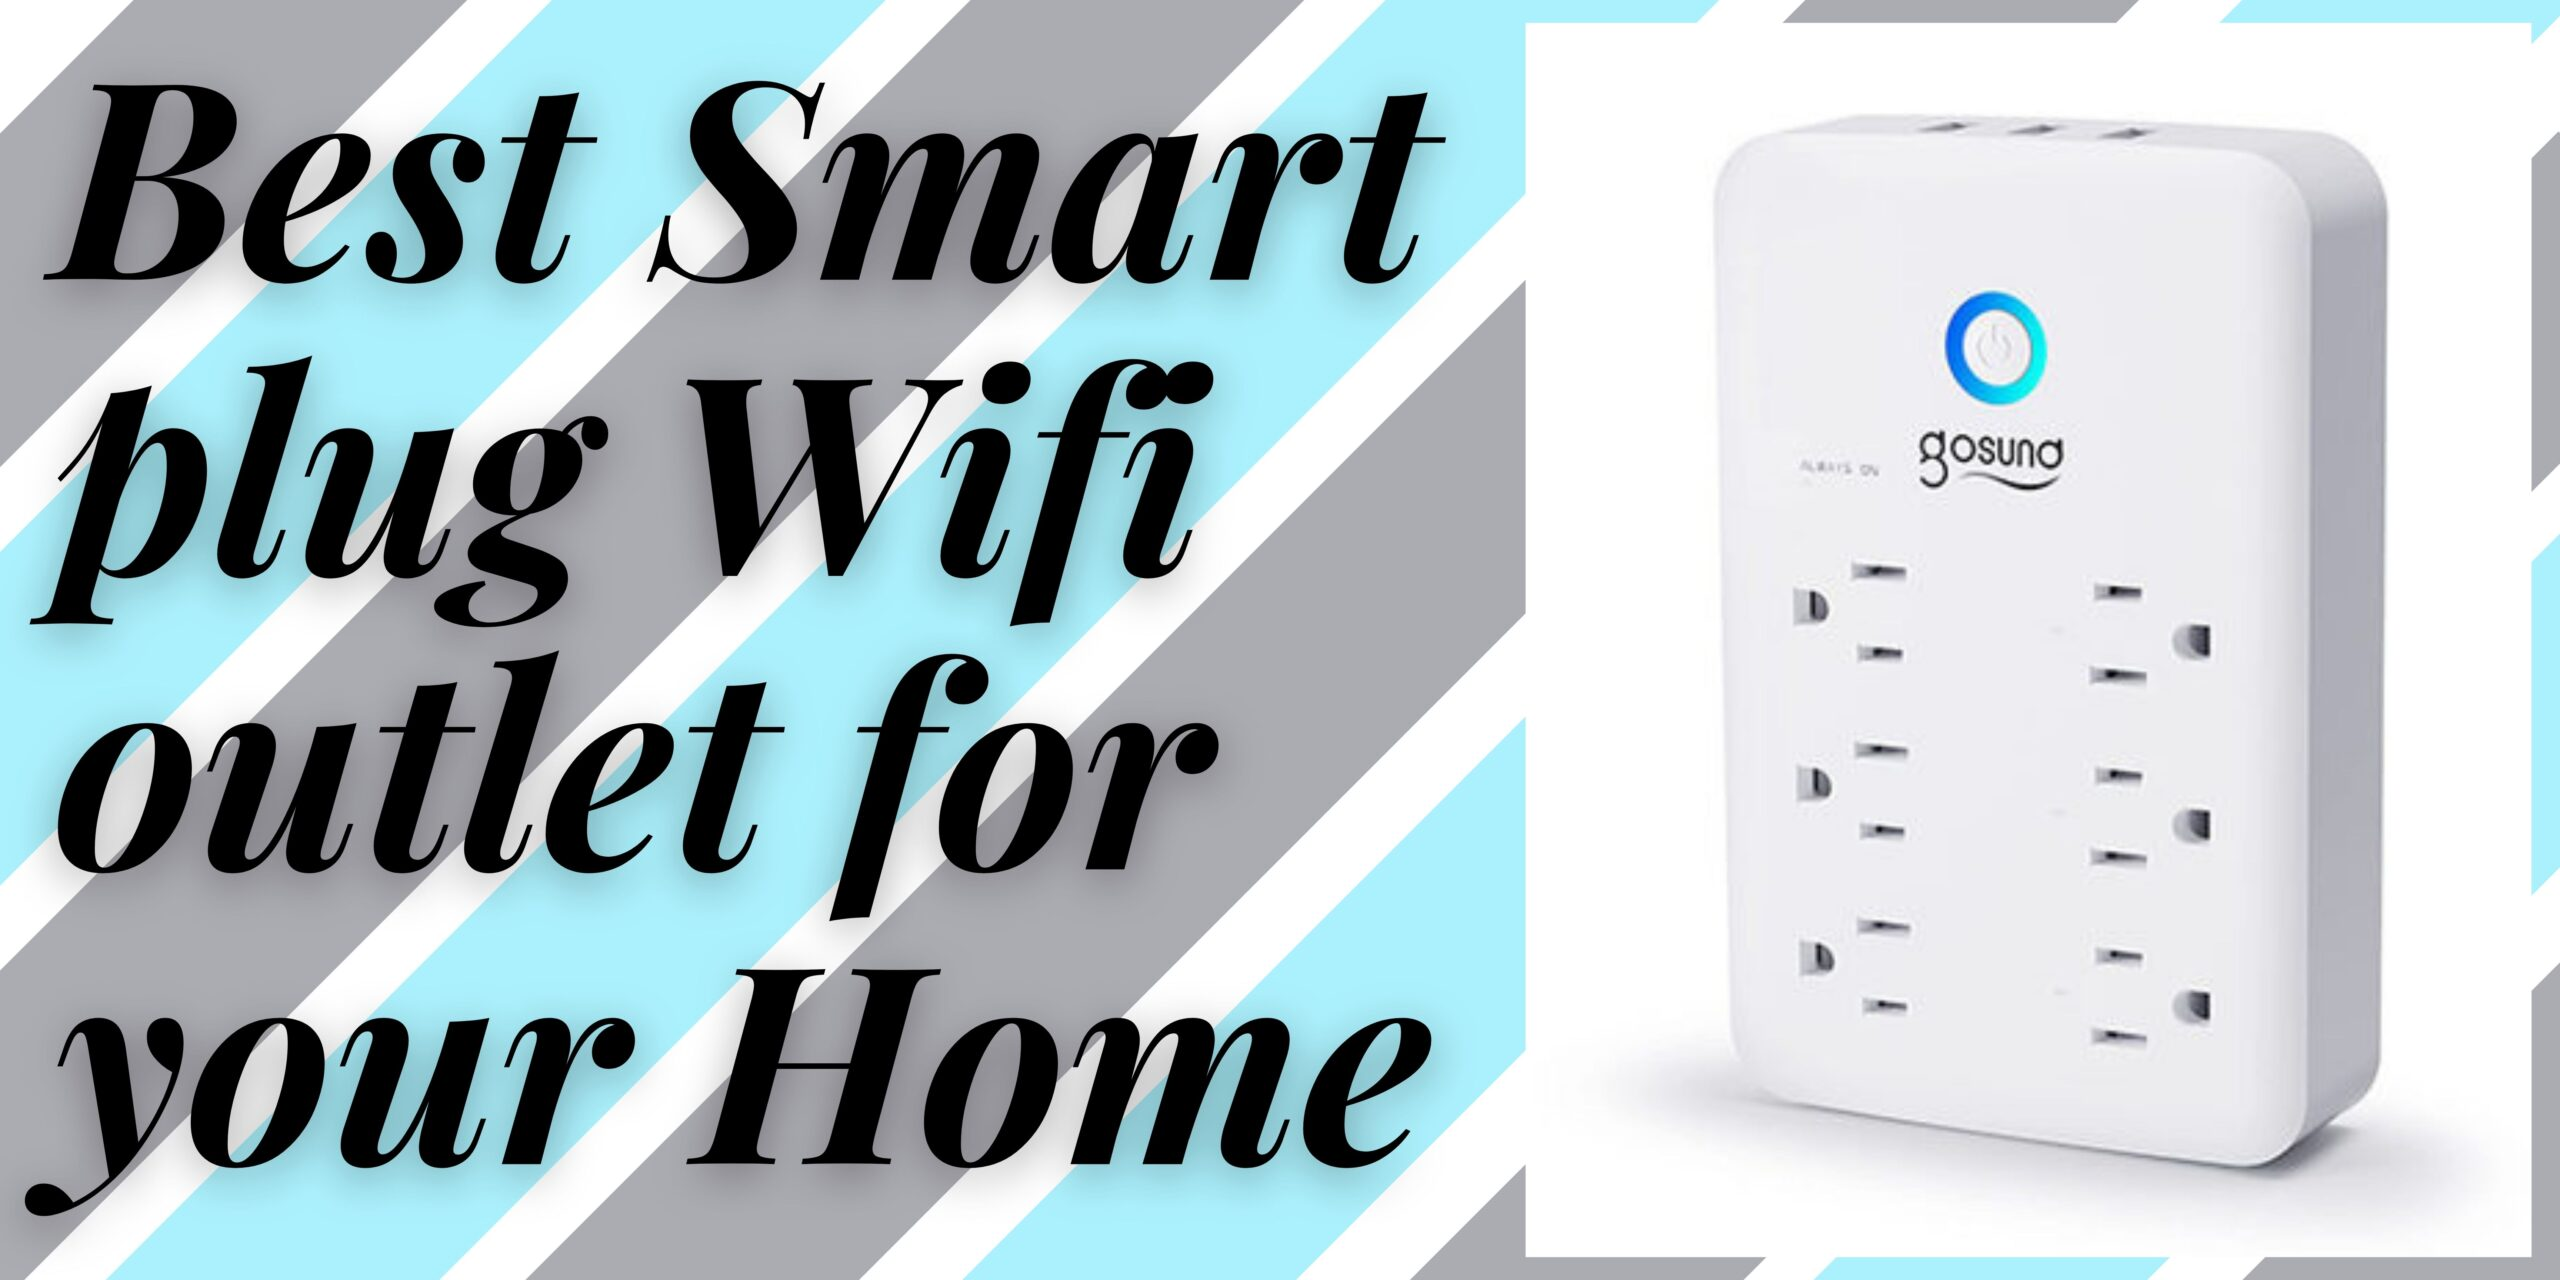 4 Best Smart Plug Wifi Outlet for your Home